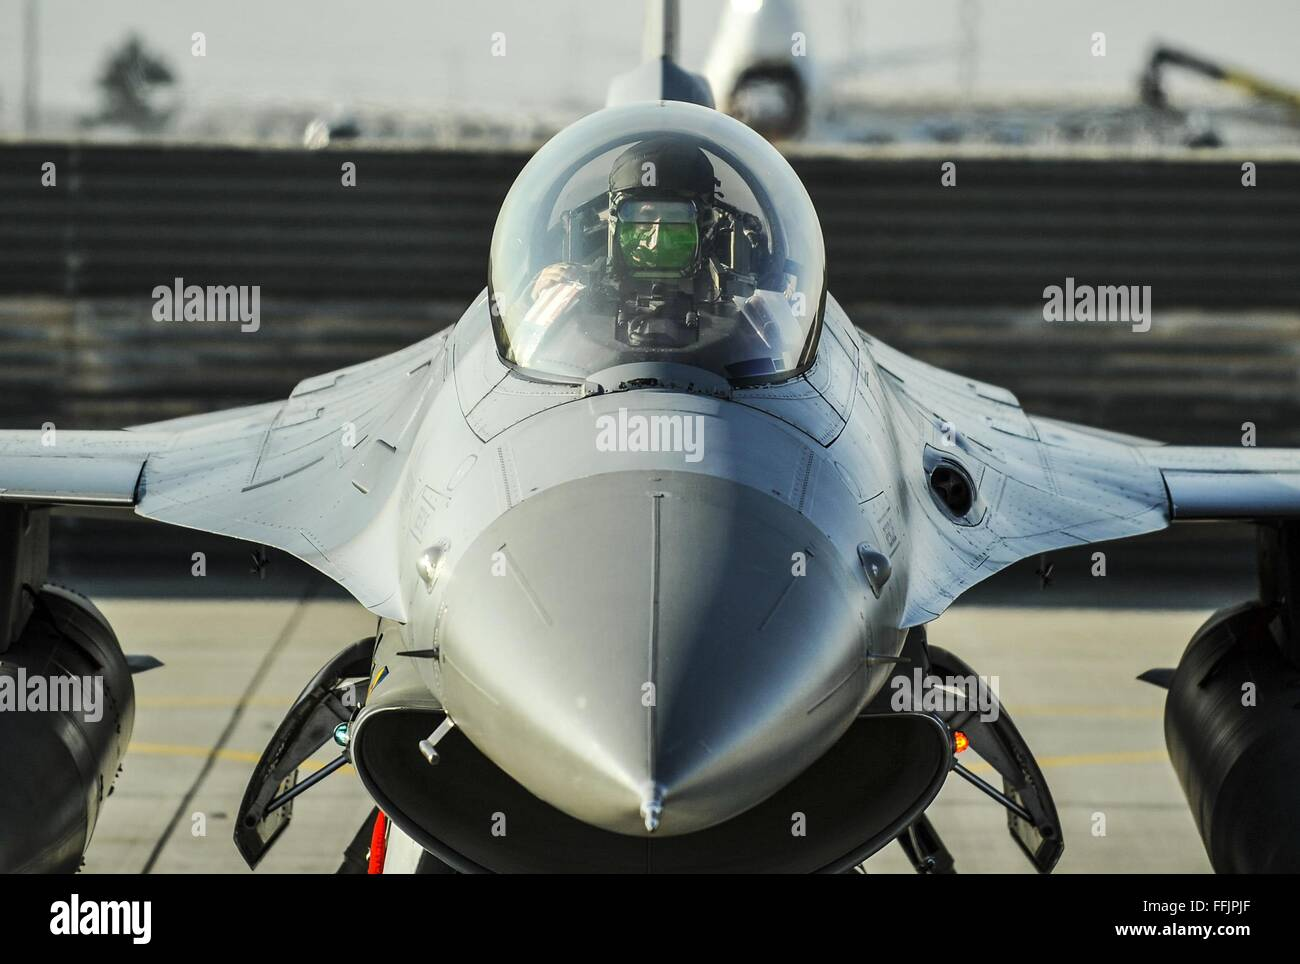 U.S. Air Force pilot Lt. Col. Thomas Wolfe performs preflight checks on an F-16 Fighting Falcon aircraft as he prepares - Stock Image